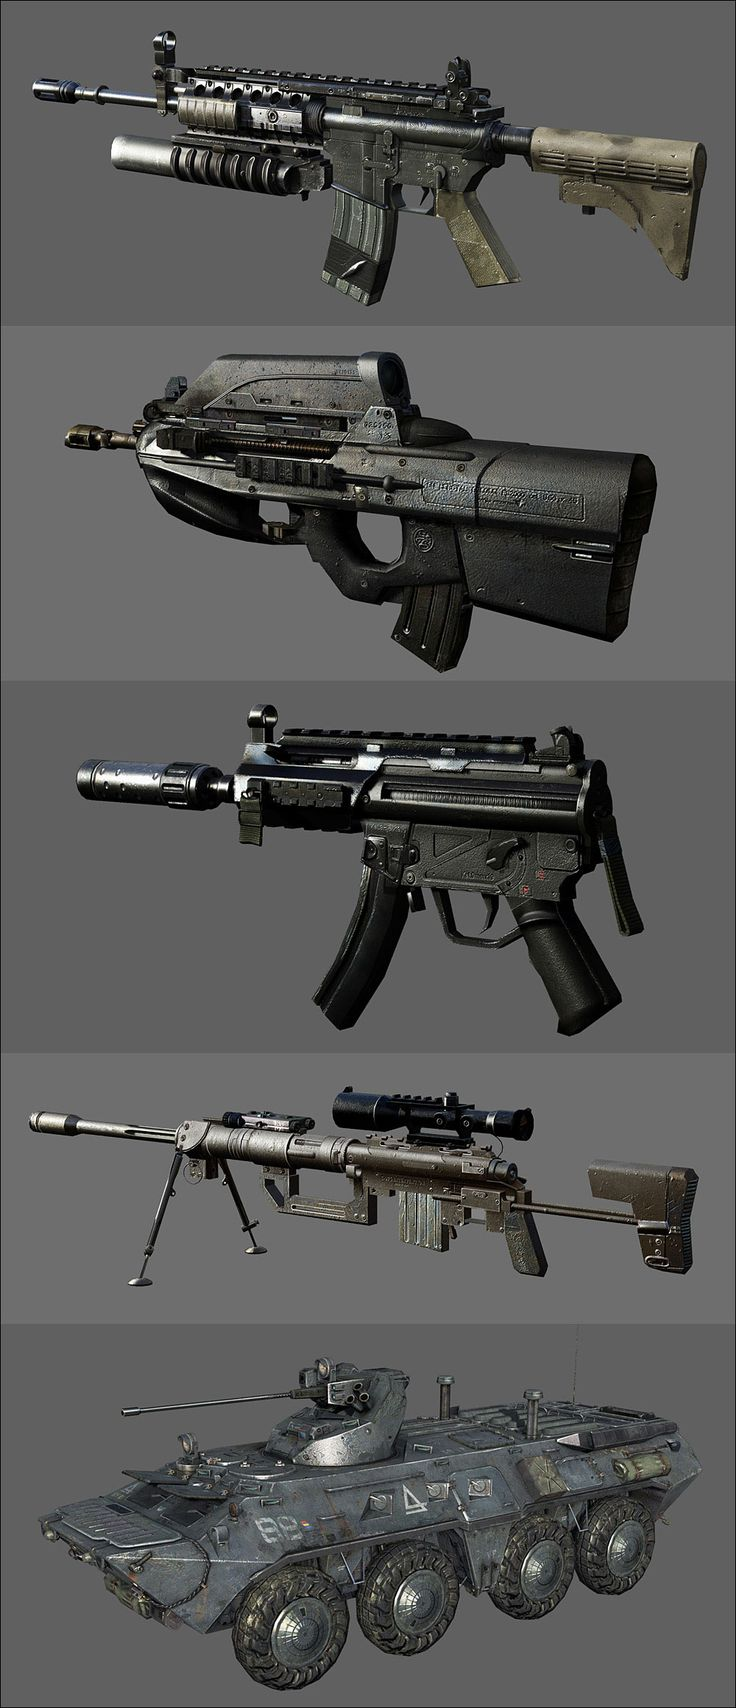 Call Of Duty : Modern Warfare 2 weapon. Fad = worst weapon ever worst recoil. Intervention = best weapon